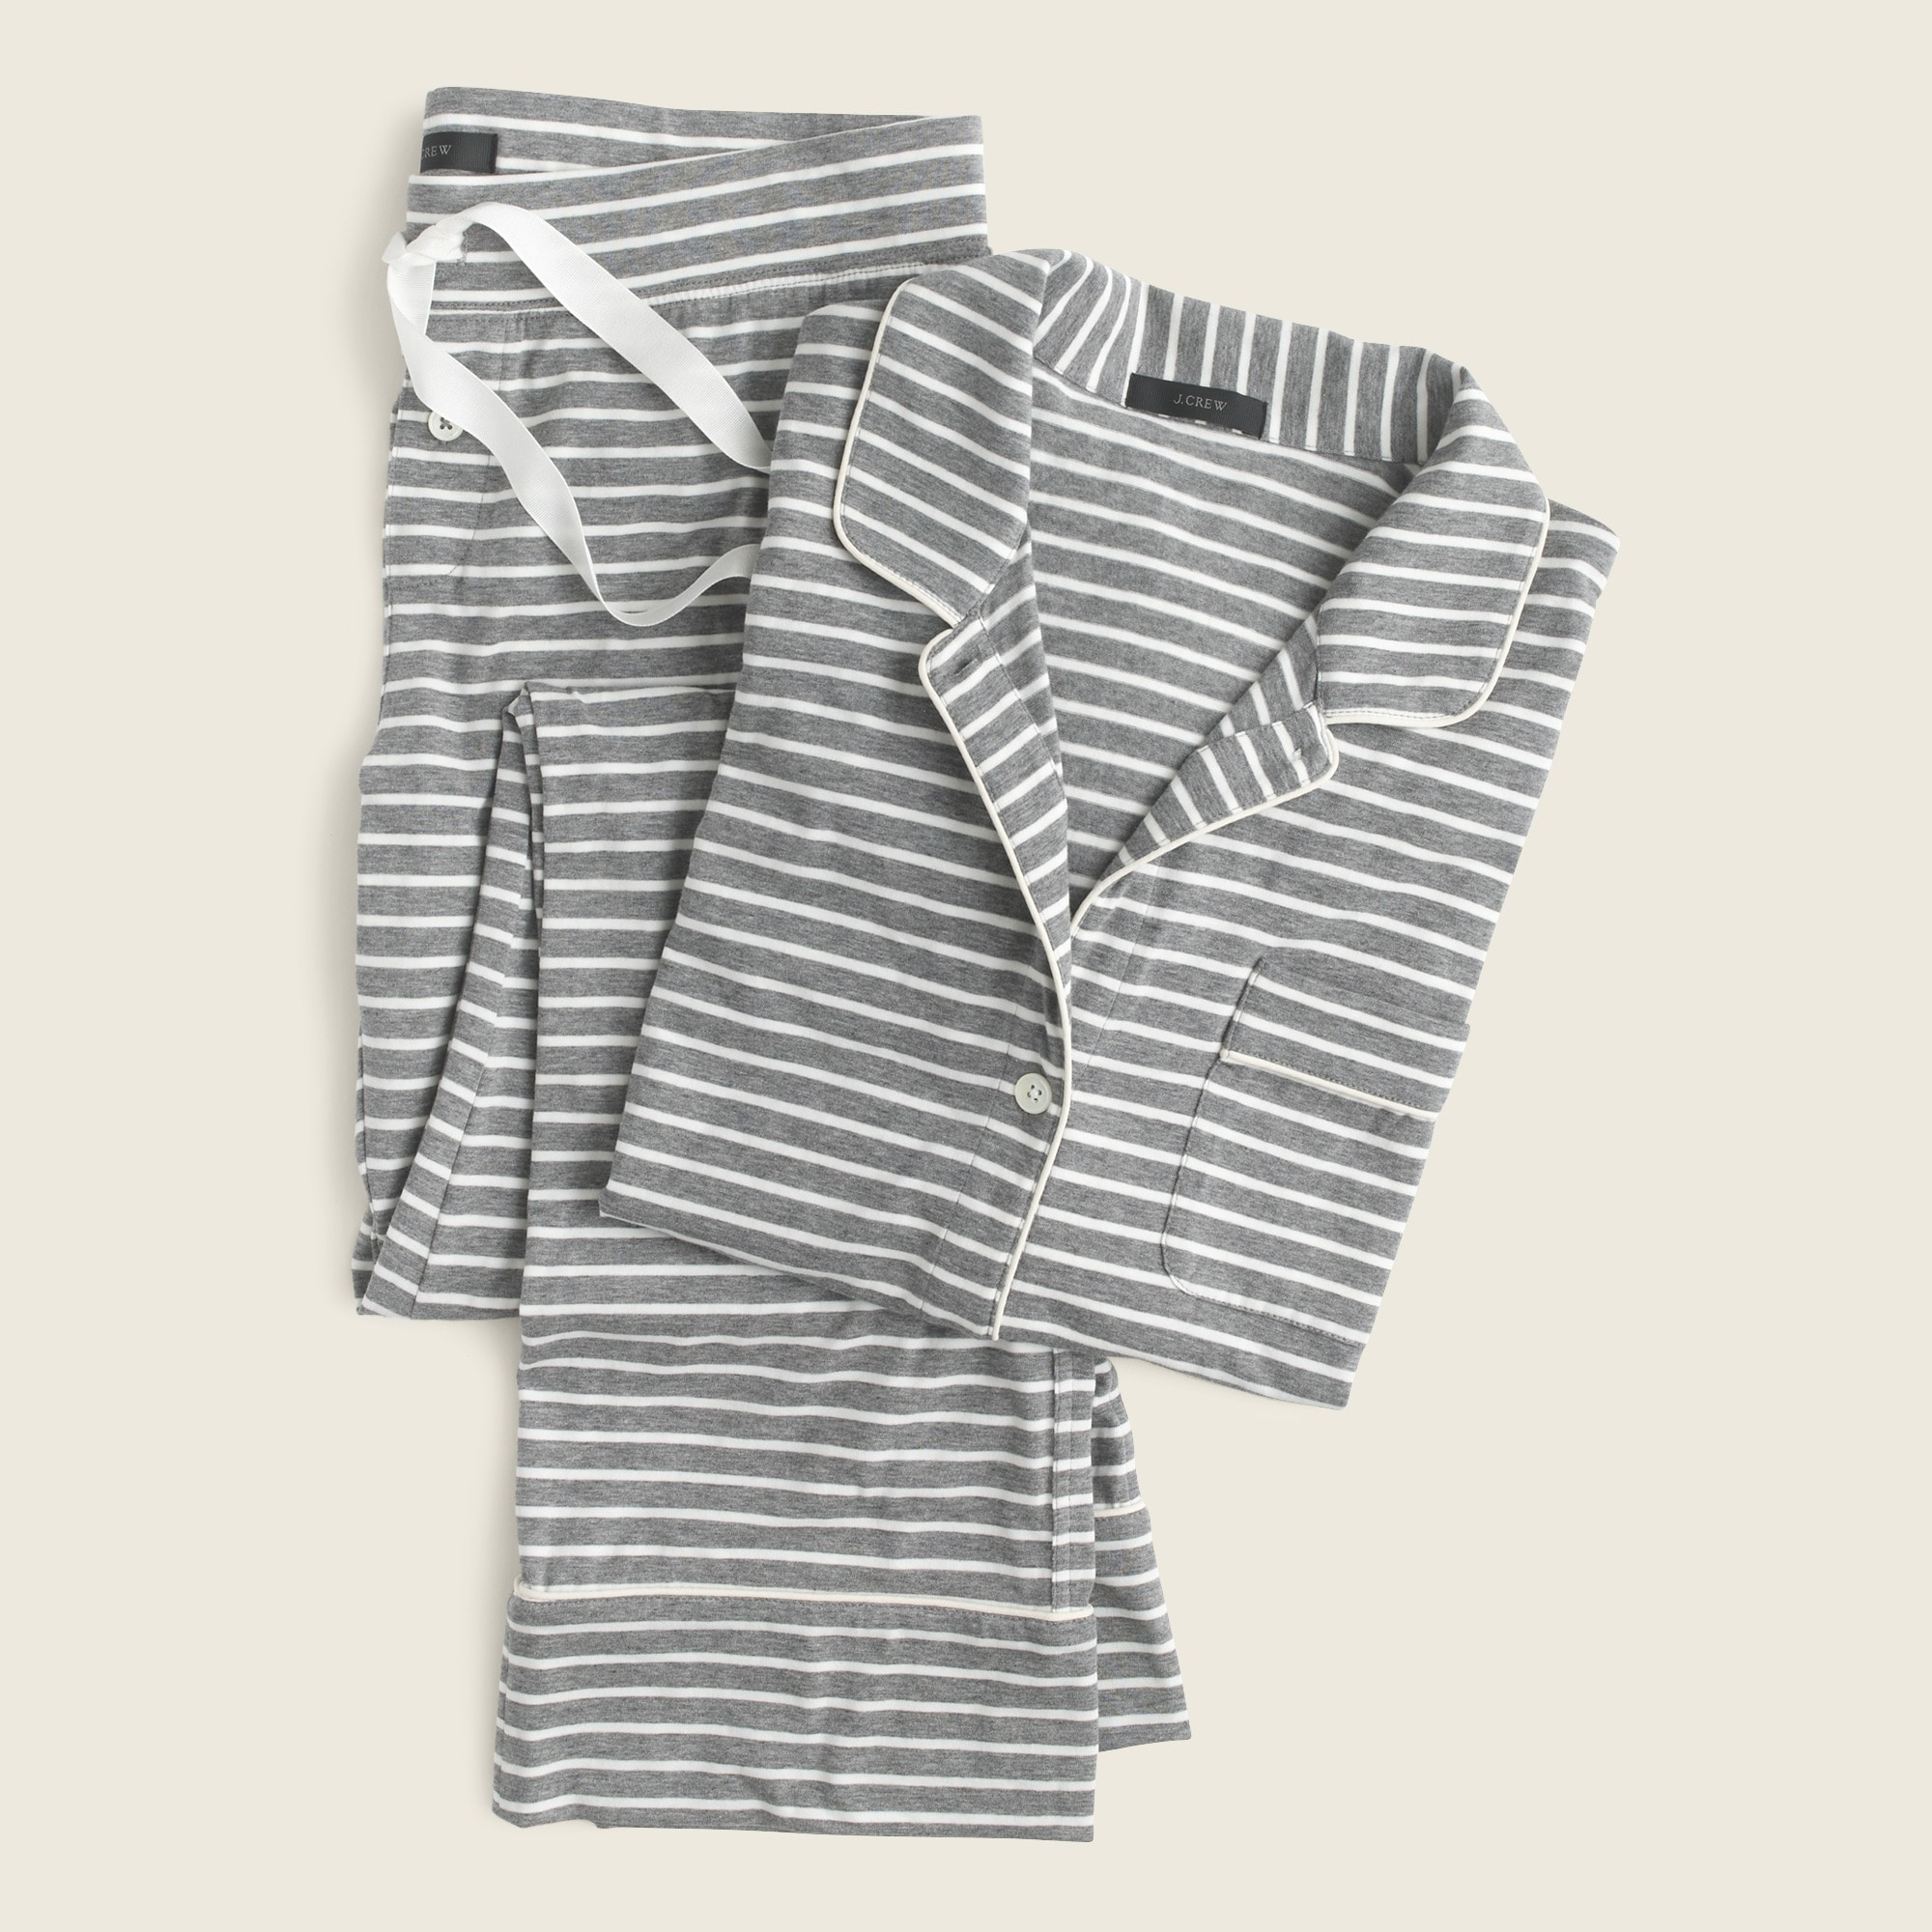 Image 3 for Dreamy cotton pajama set in stripe